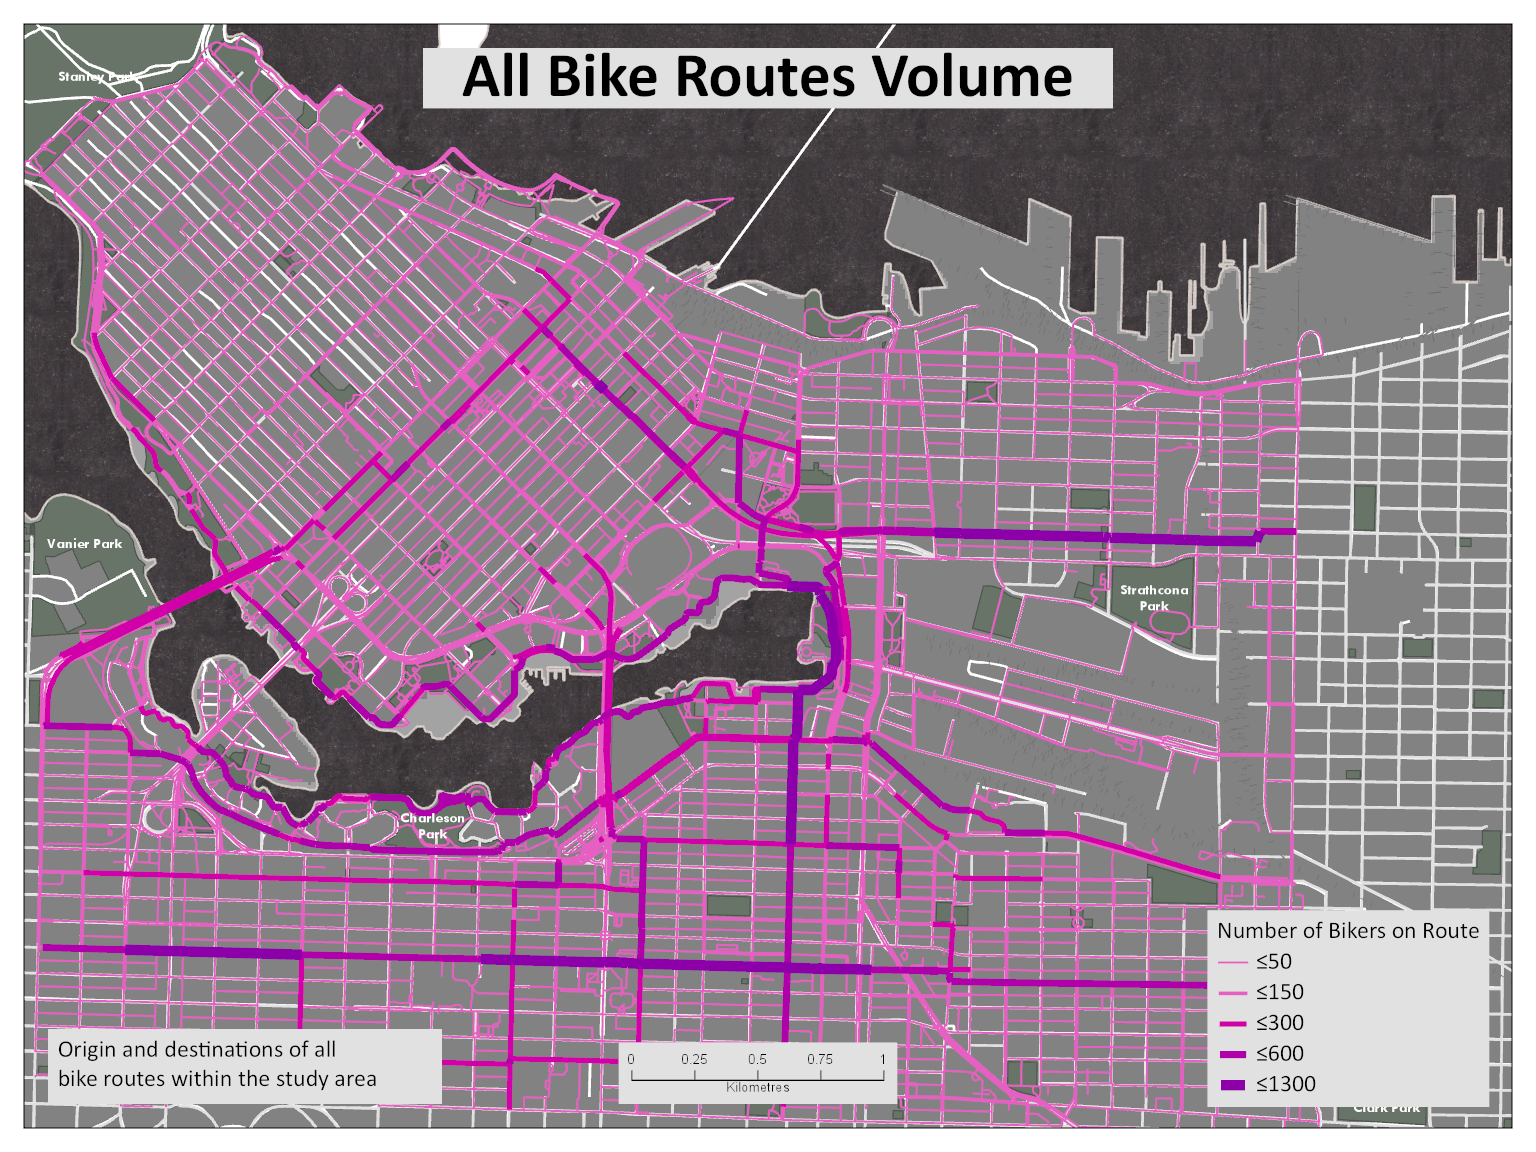 AllBikeRoutesViaductFixed.png